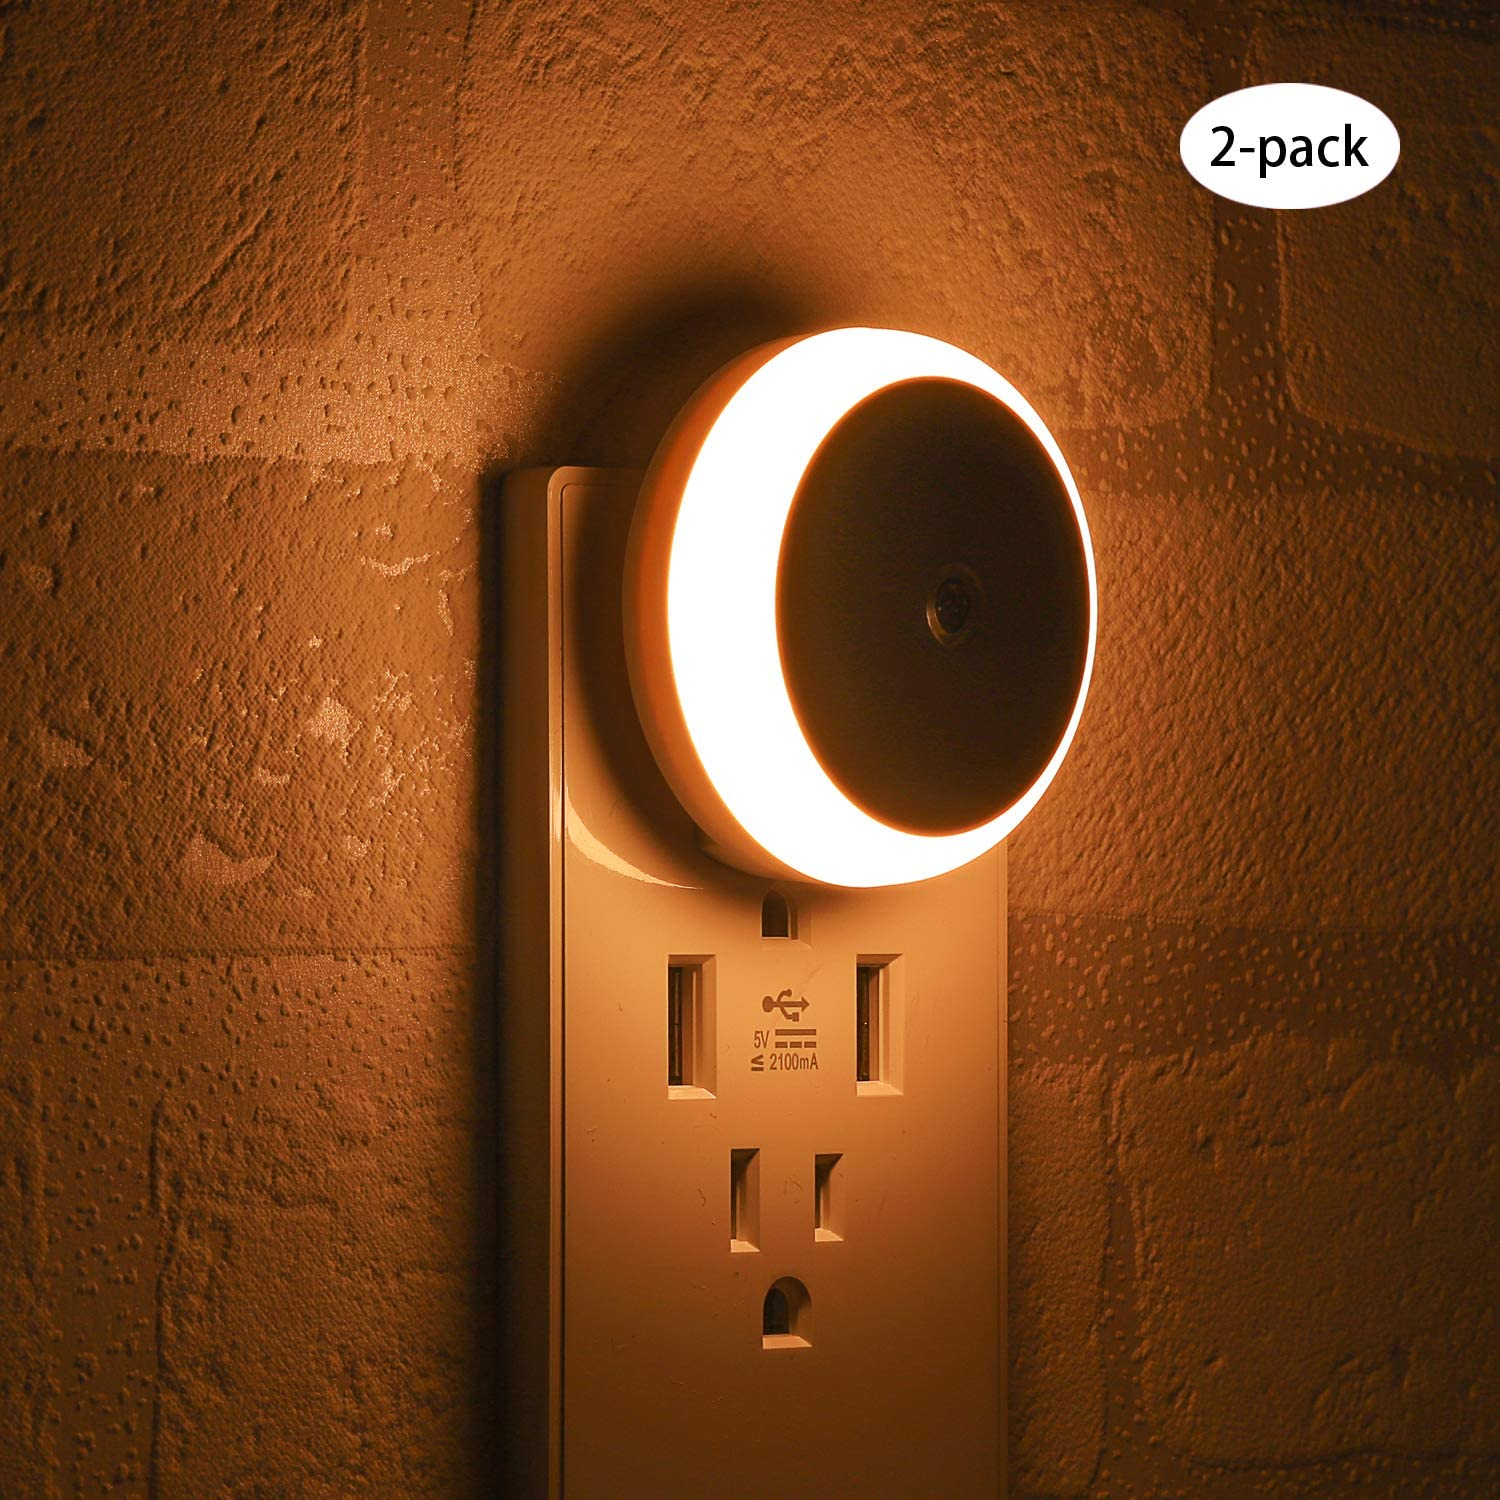 LED Night Light, with Dusk to Dawn Sensor, Diffused Light, Energy Efficient, Plug in Night Light for Bedroom, Bathroom, Kitchen, Hallway, Stairs, Kids Room, Warm White, 2 Pack